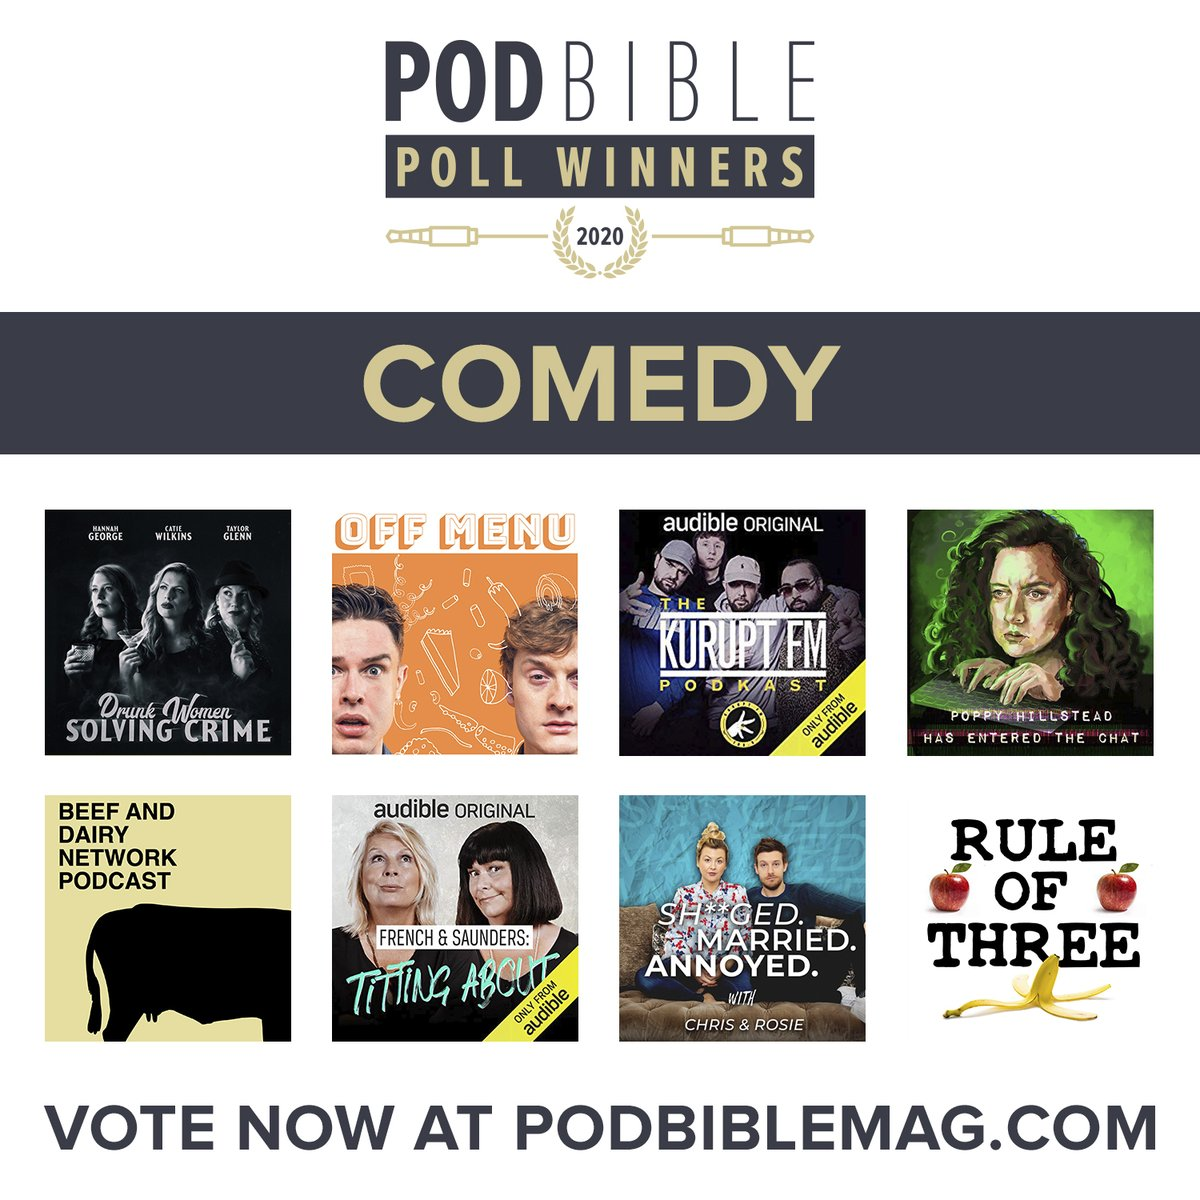 POD BIBLE POLL WINNERS 2020!  The nominees for best COMEDY podcast are...  Vote for your favourites now at https://t.co/WQkcfAb7ko  Voting closes on December 31st 2020  #PBPW2020 @acast @SpotifyUK @audibleuk https://t.co/zxqjrc72Bp